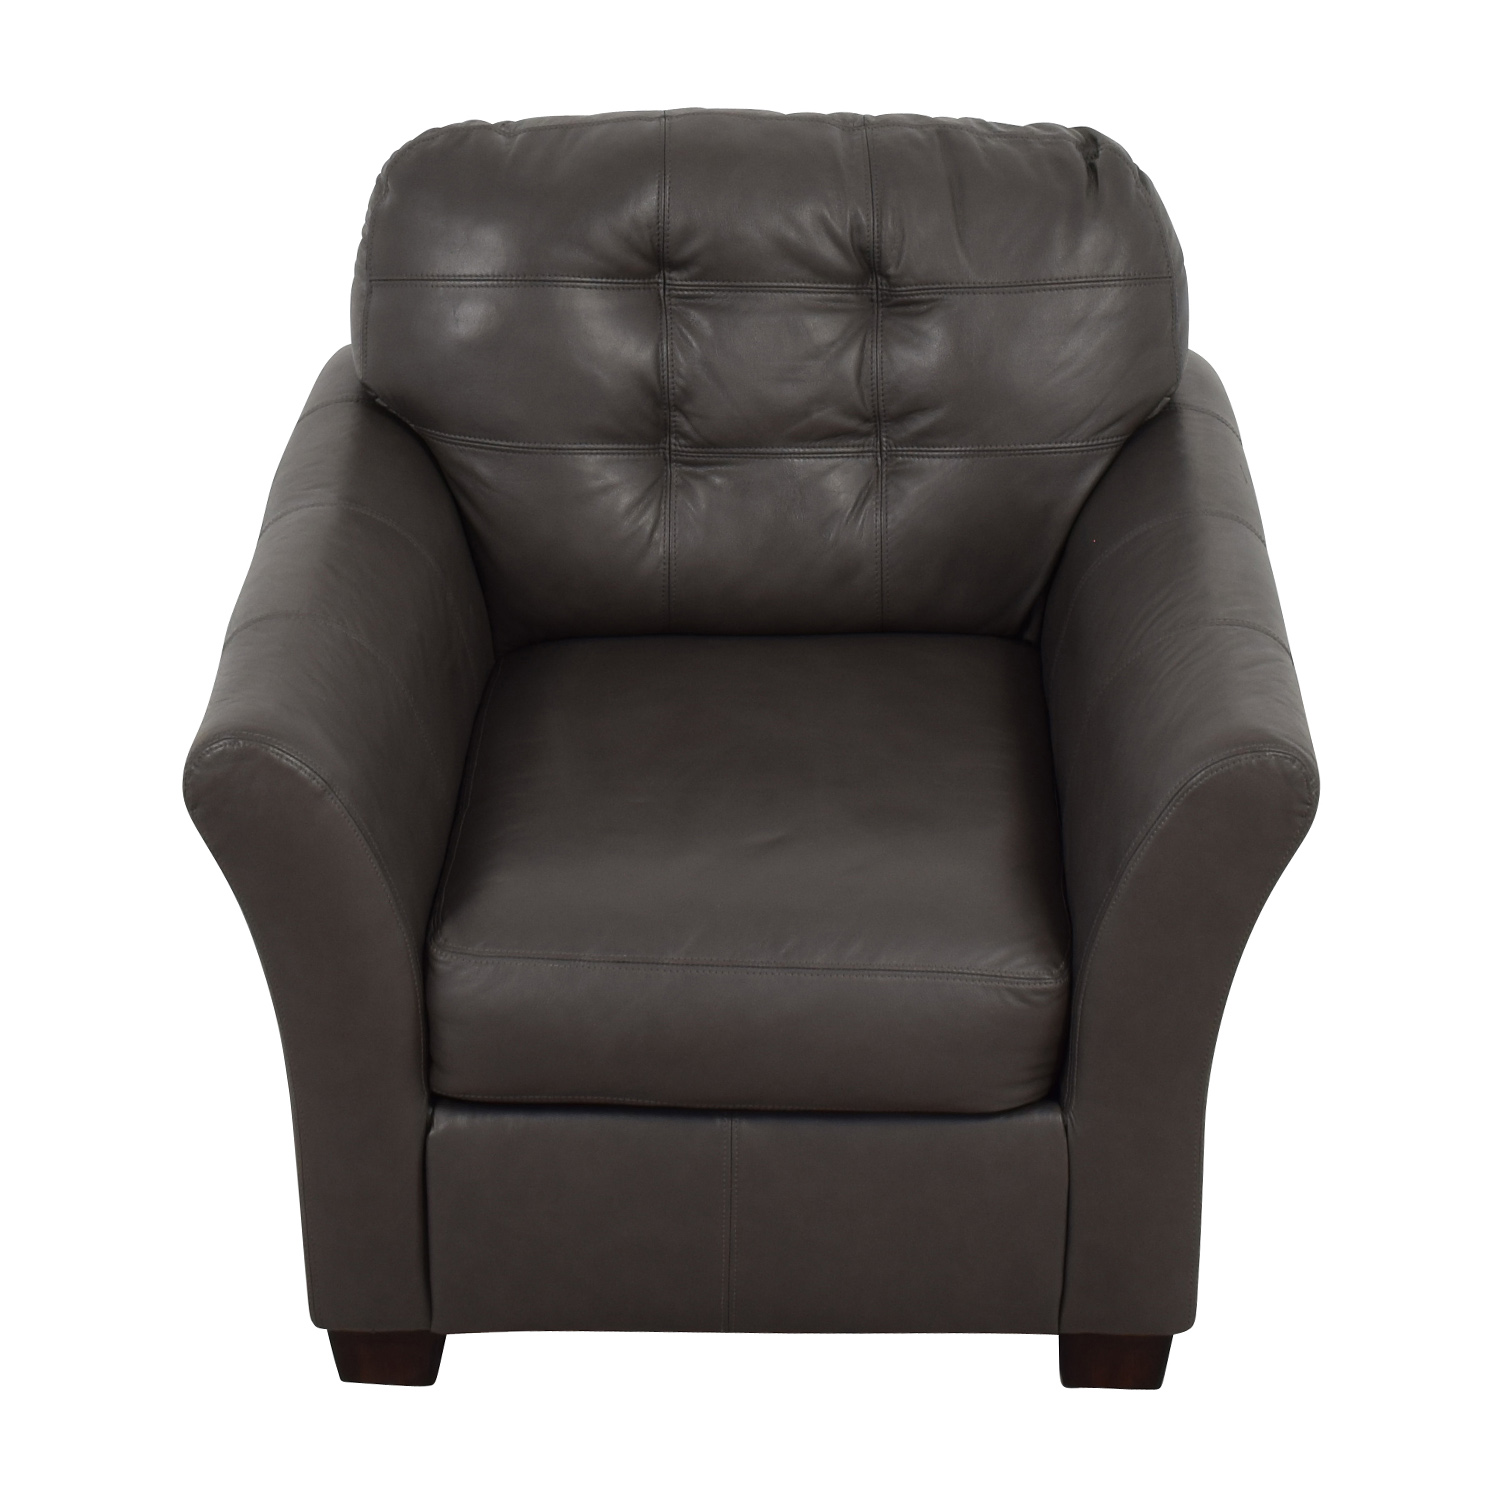 Ashley Furniture Ashley Furniture Gray Leather Chair nyc